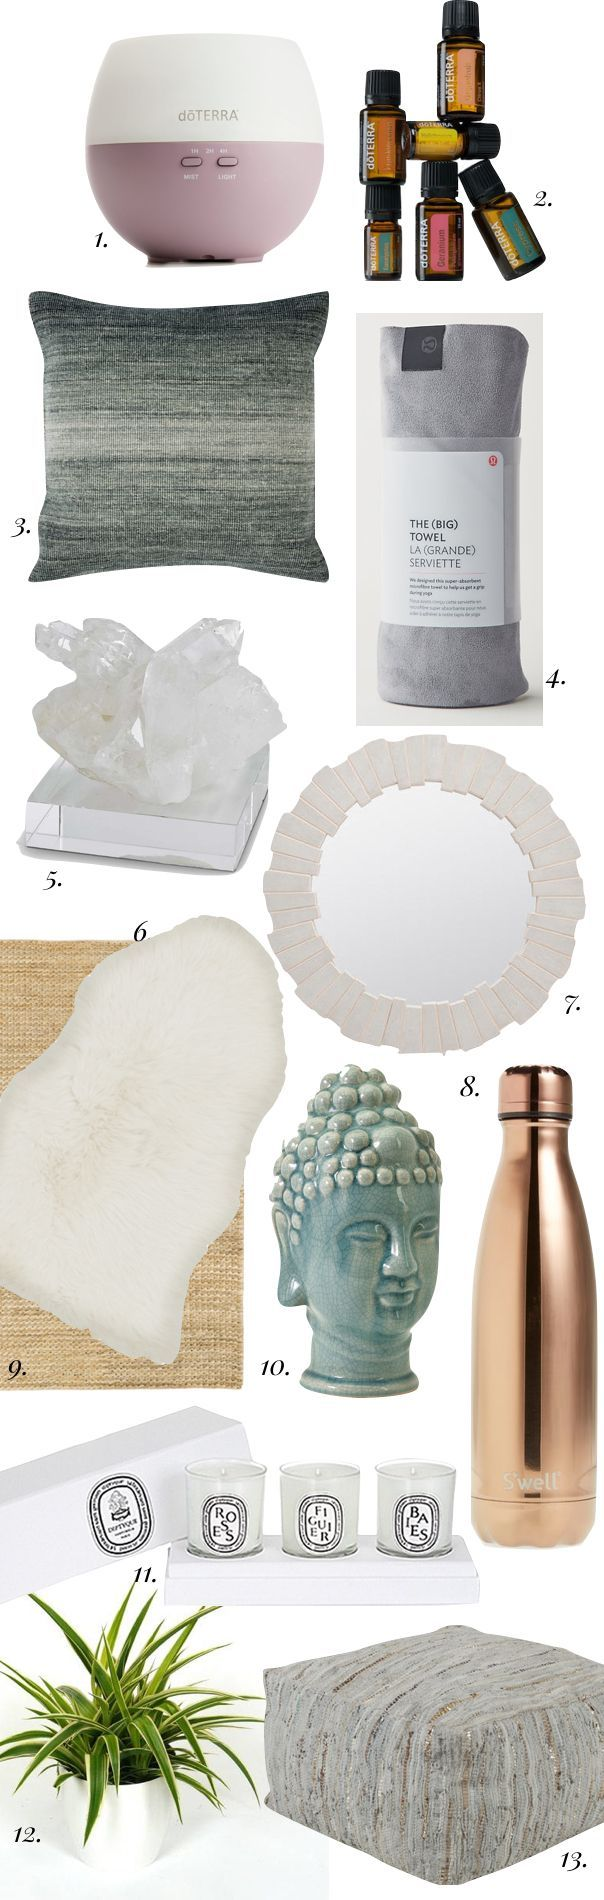 13 Essentials for your Wellness and Meditation Room